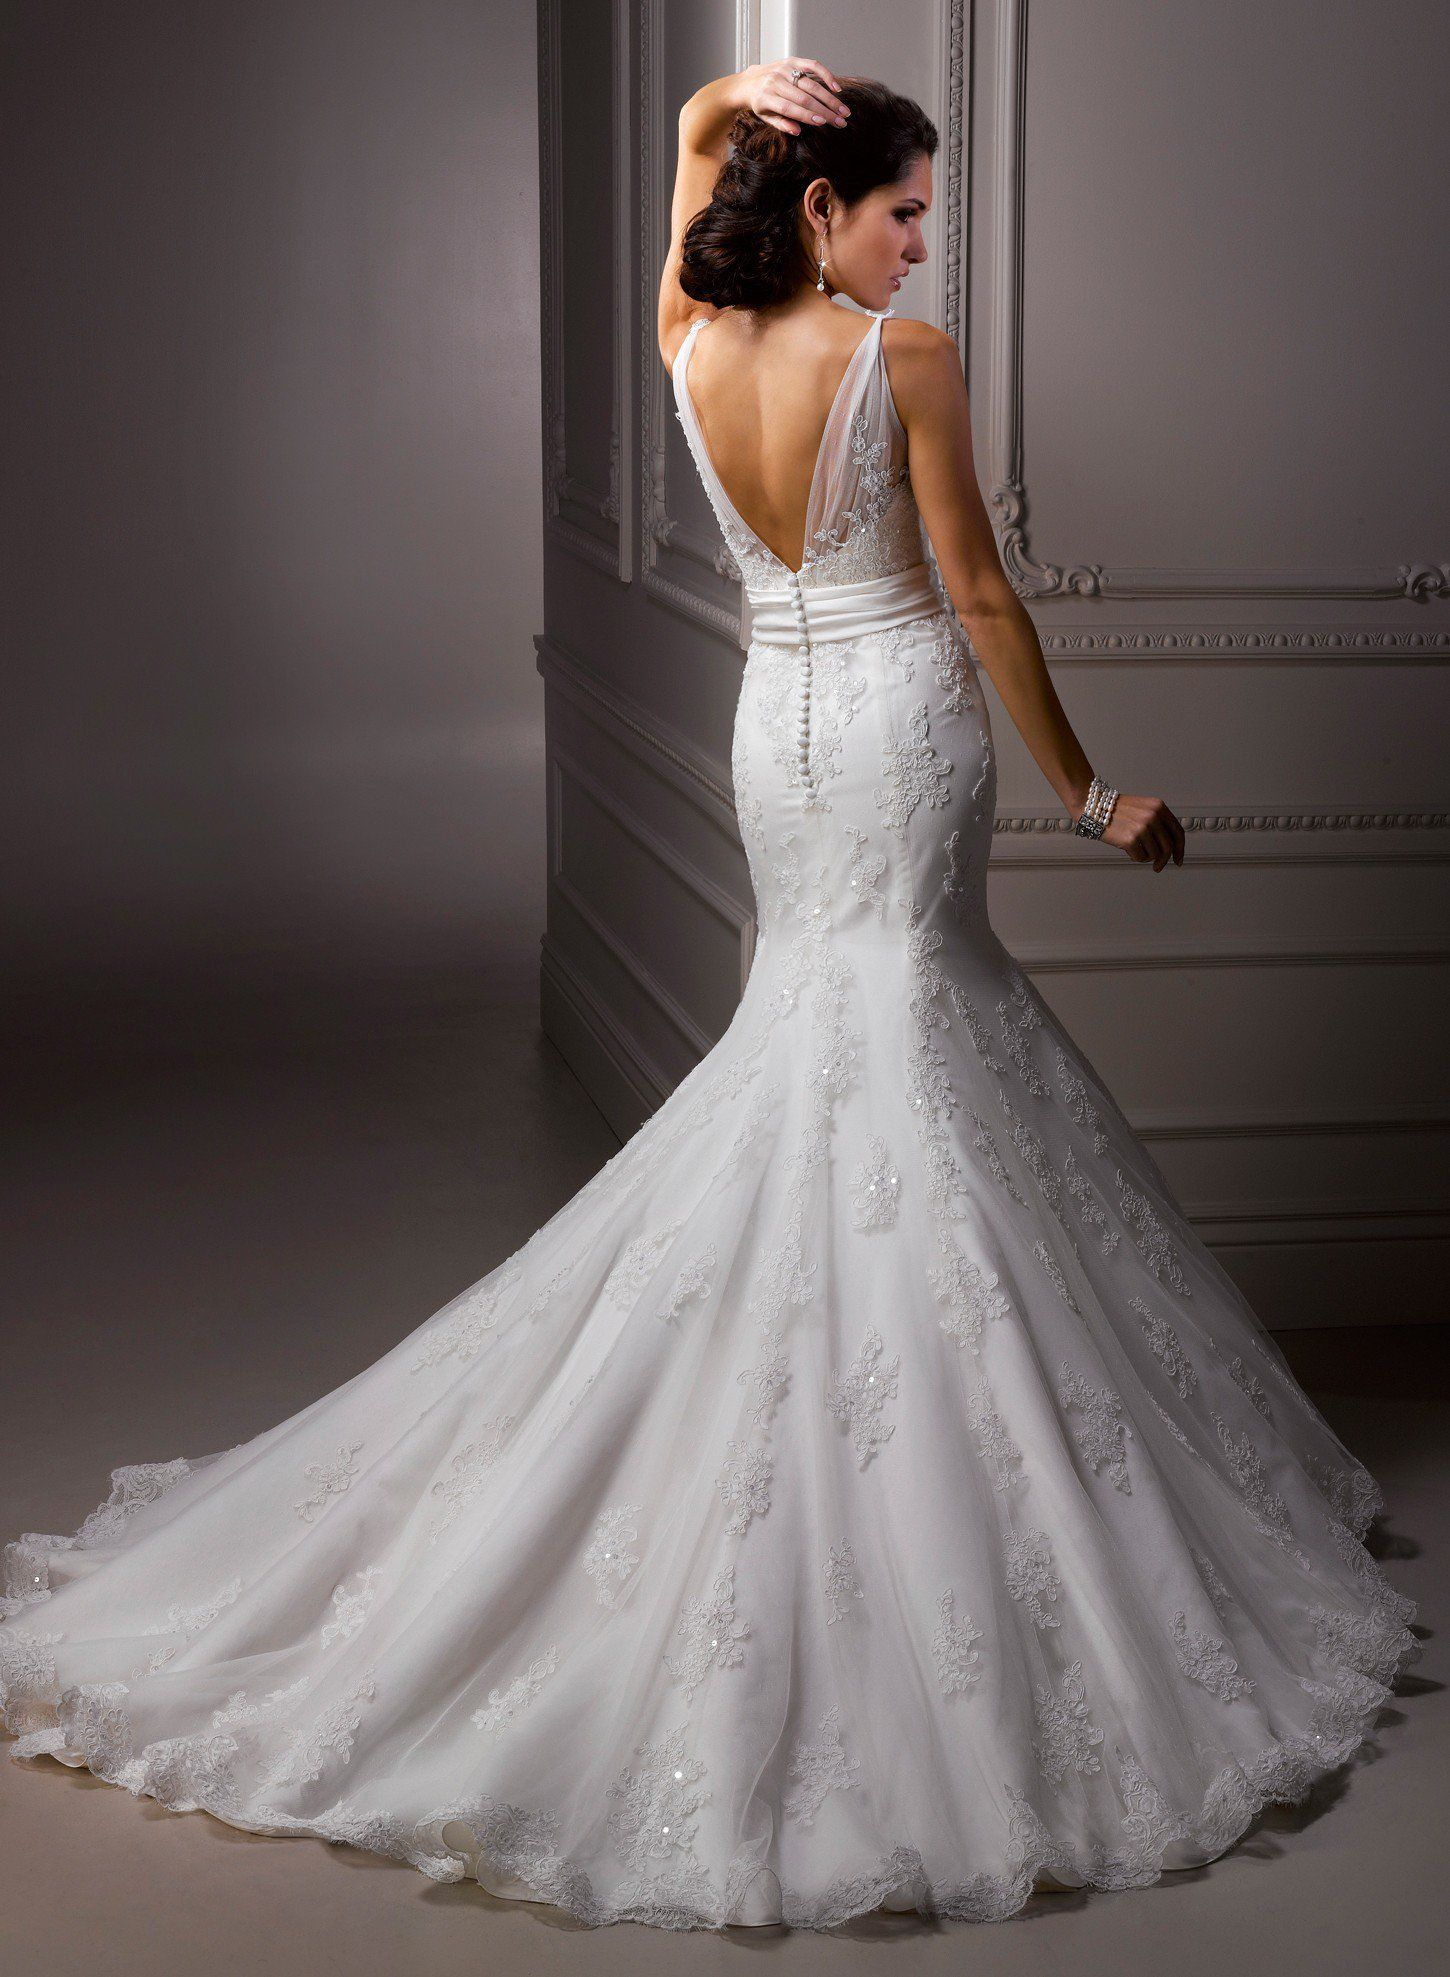 Wedding Dresses Hd Wallpapers Download Free Wedding Dresses Tumblr